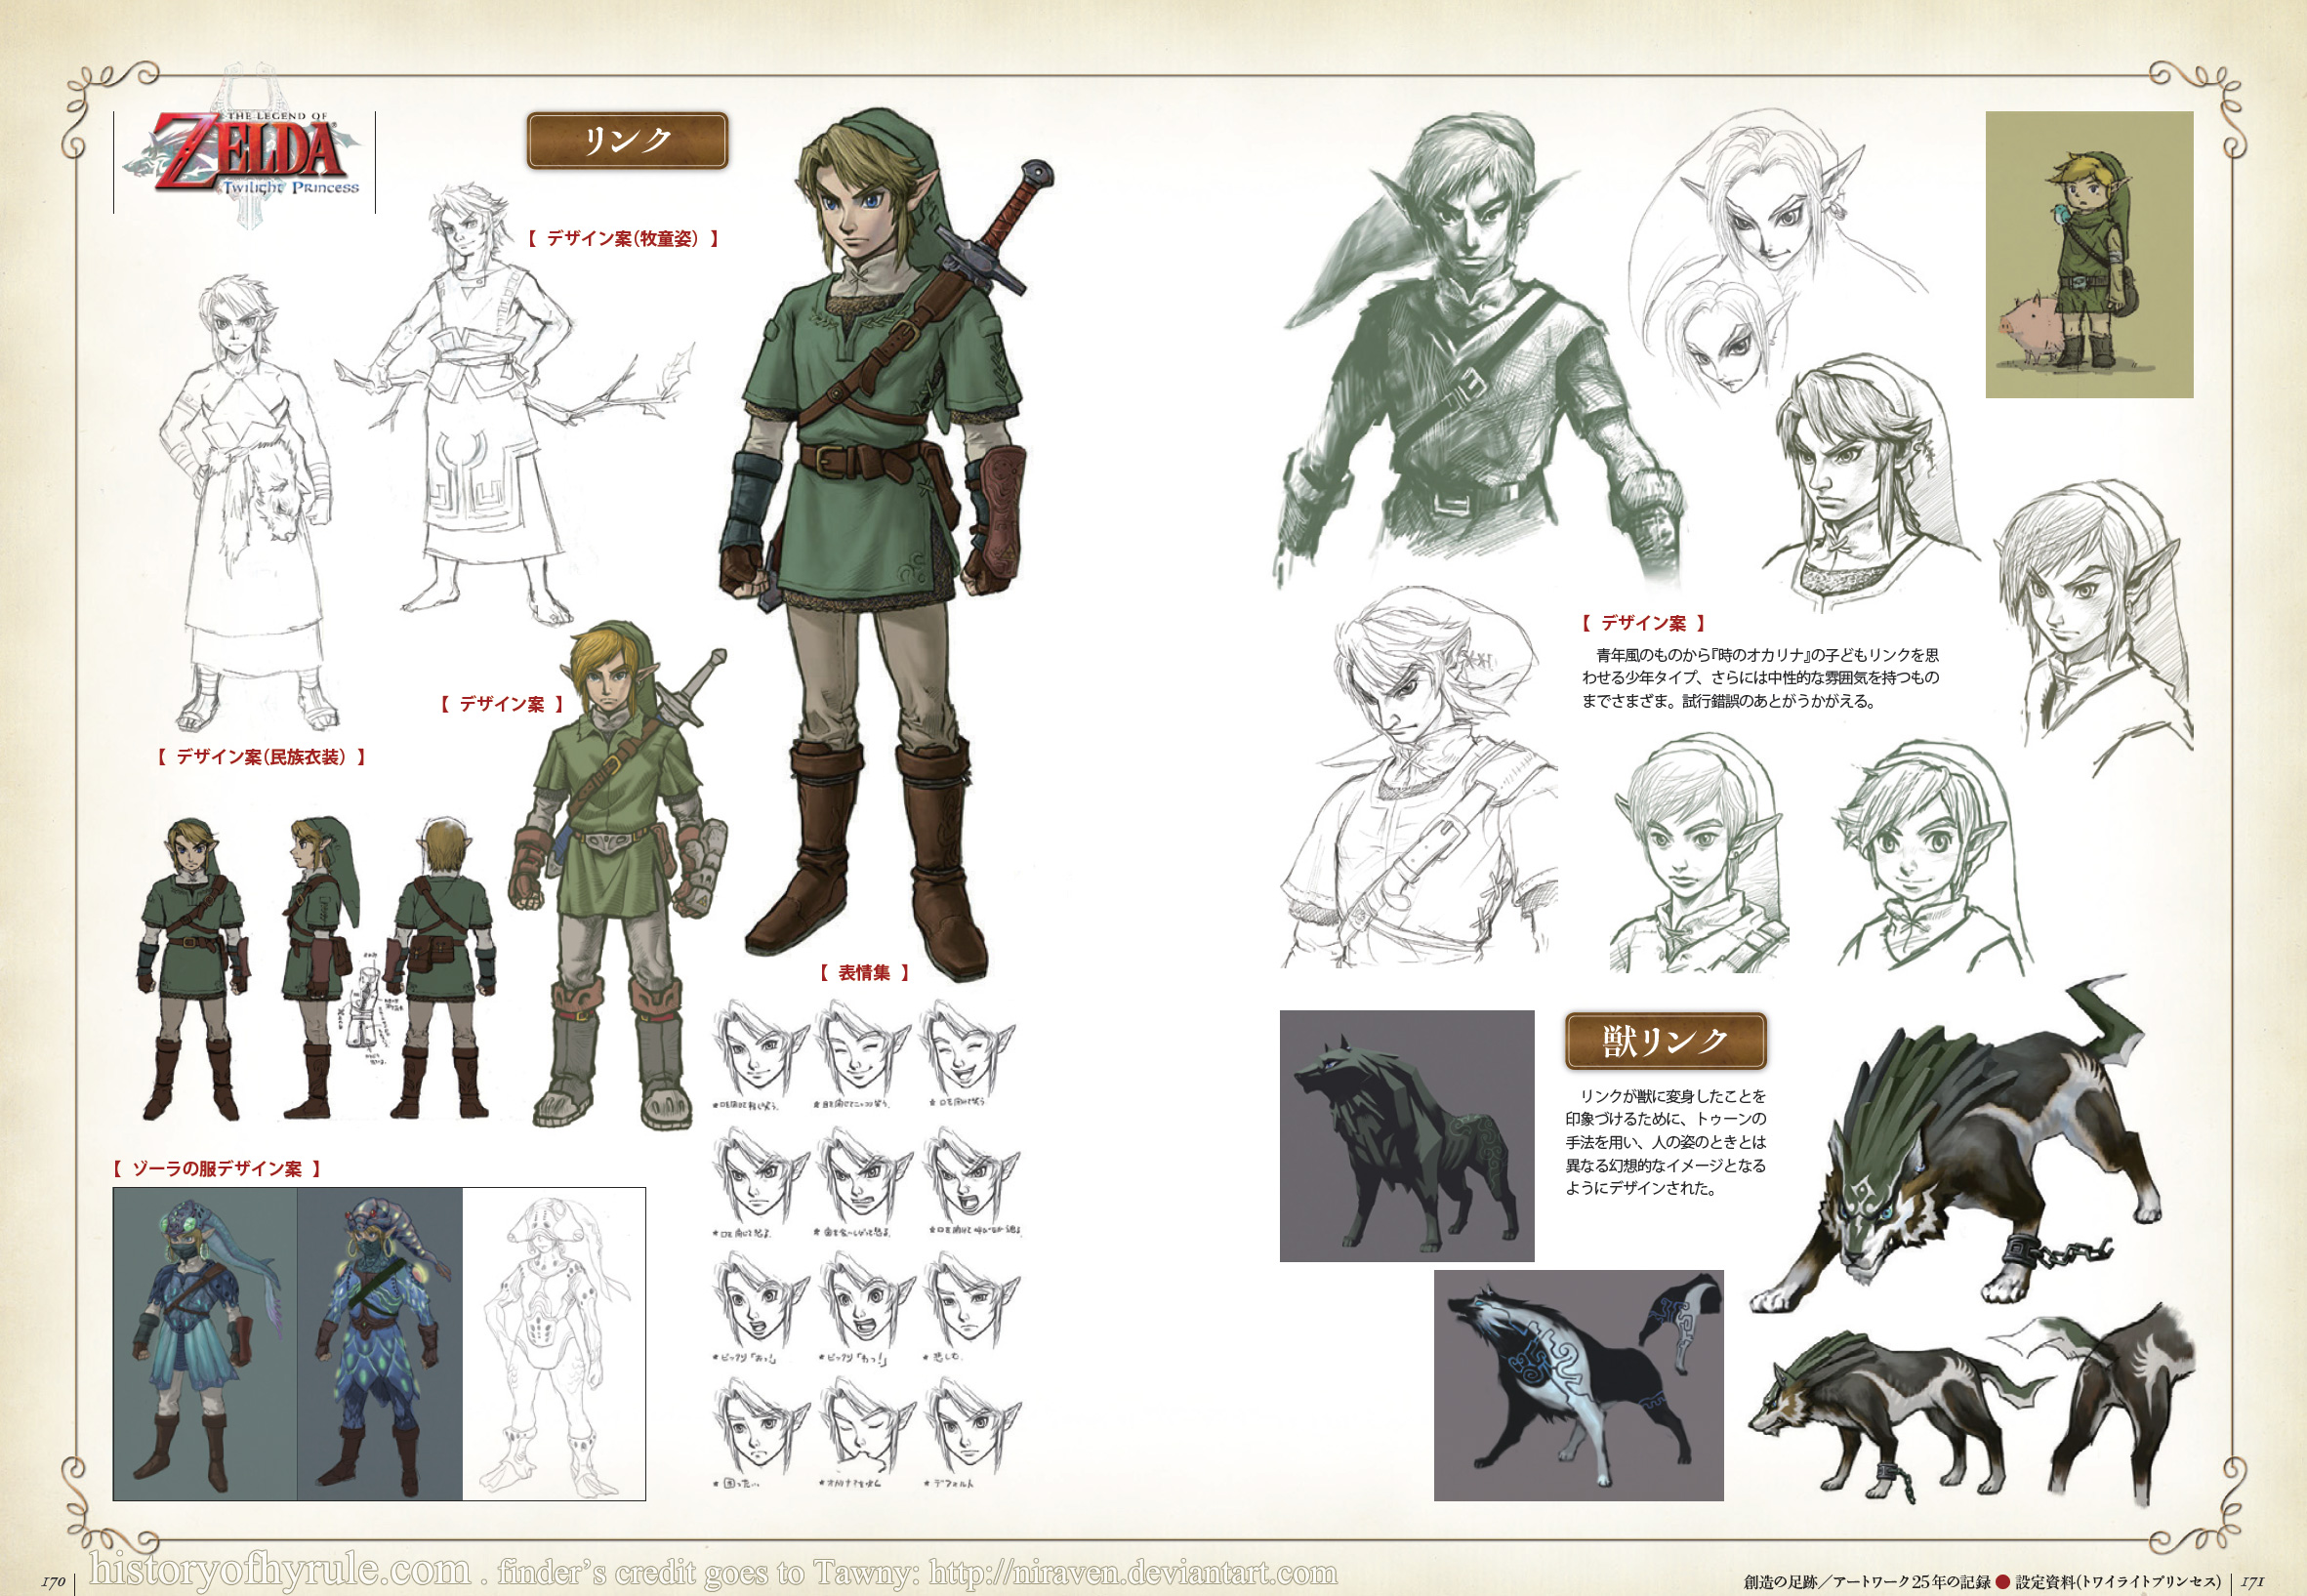 New Hyrule Historia preview shows never-before-seen Midna concept ...